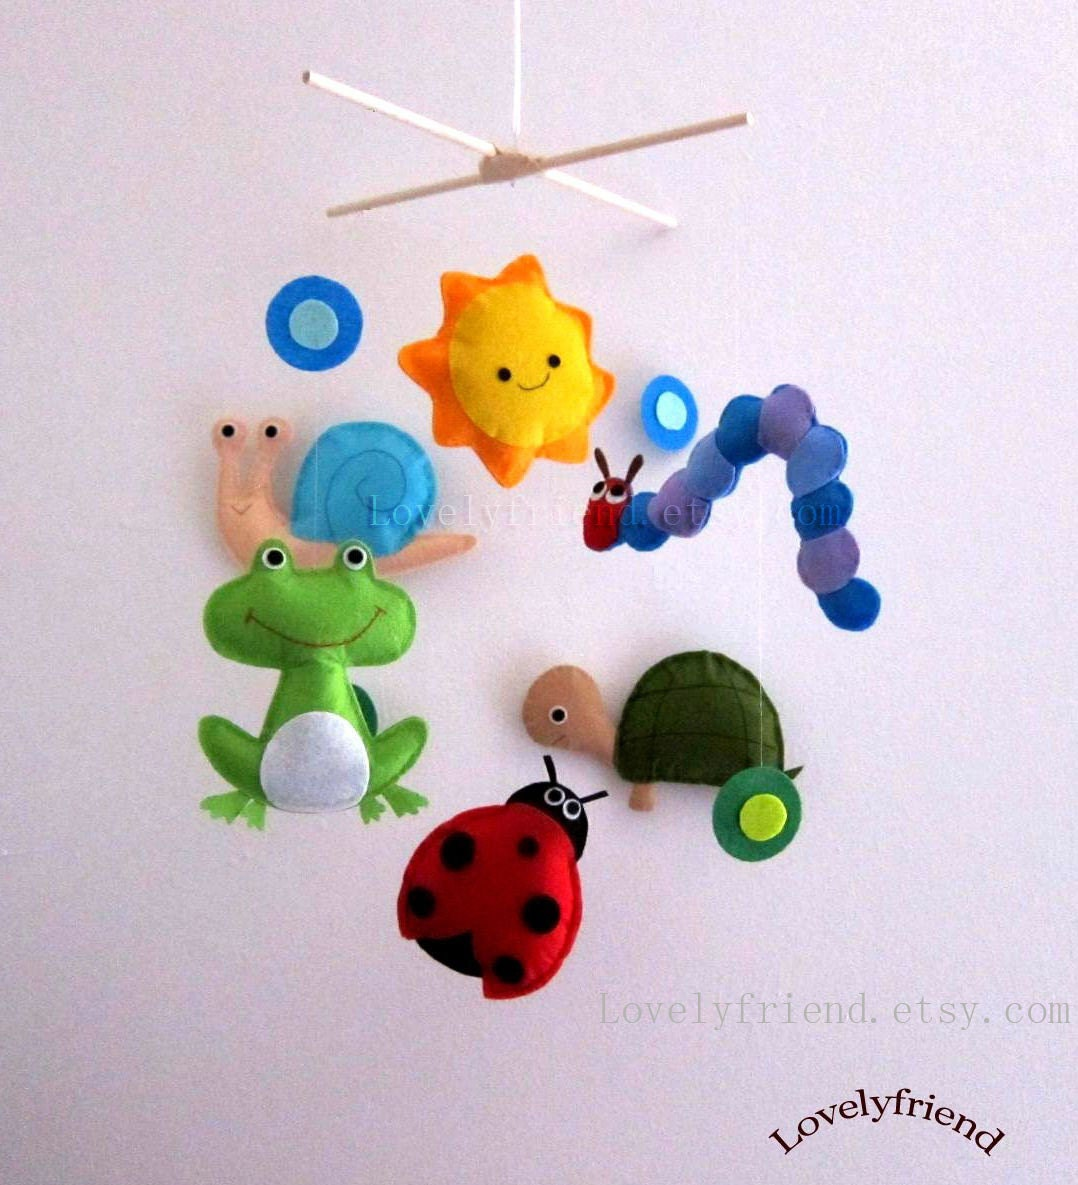 baby crib mobile baby mobile ladybug decorative by lovelyfriend. Black Bedroom Furniture Sets. Home Design Ideas